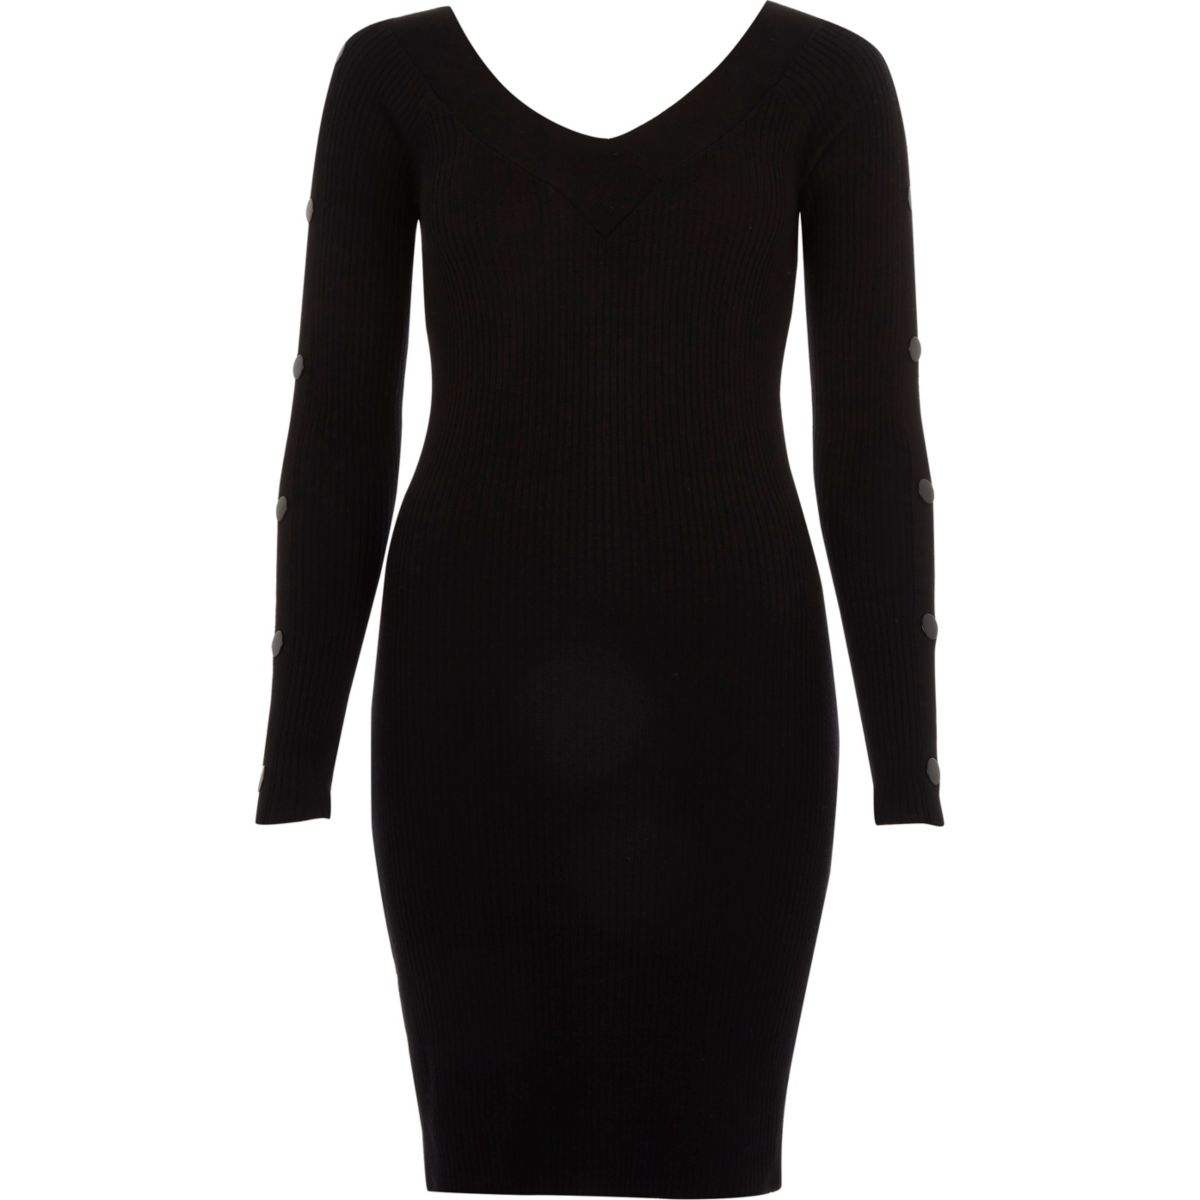 Black rib knit hardware sleeve bodycon dress